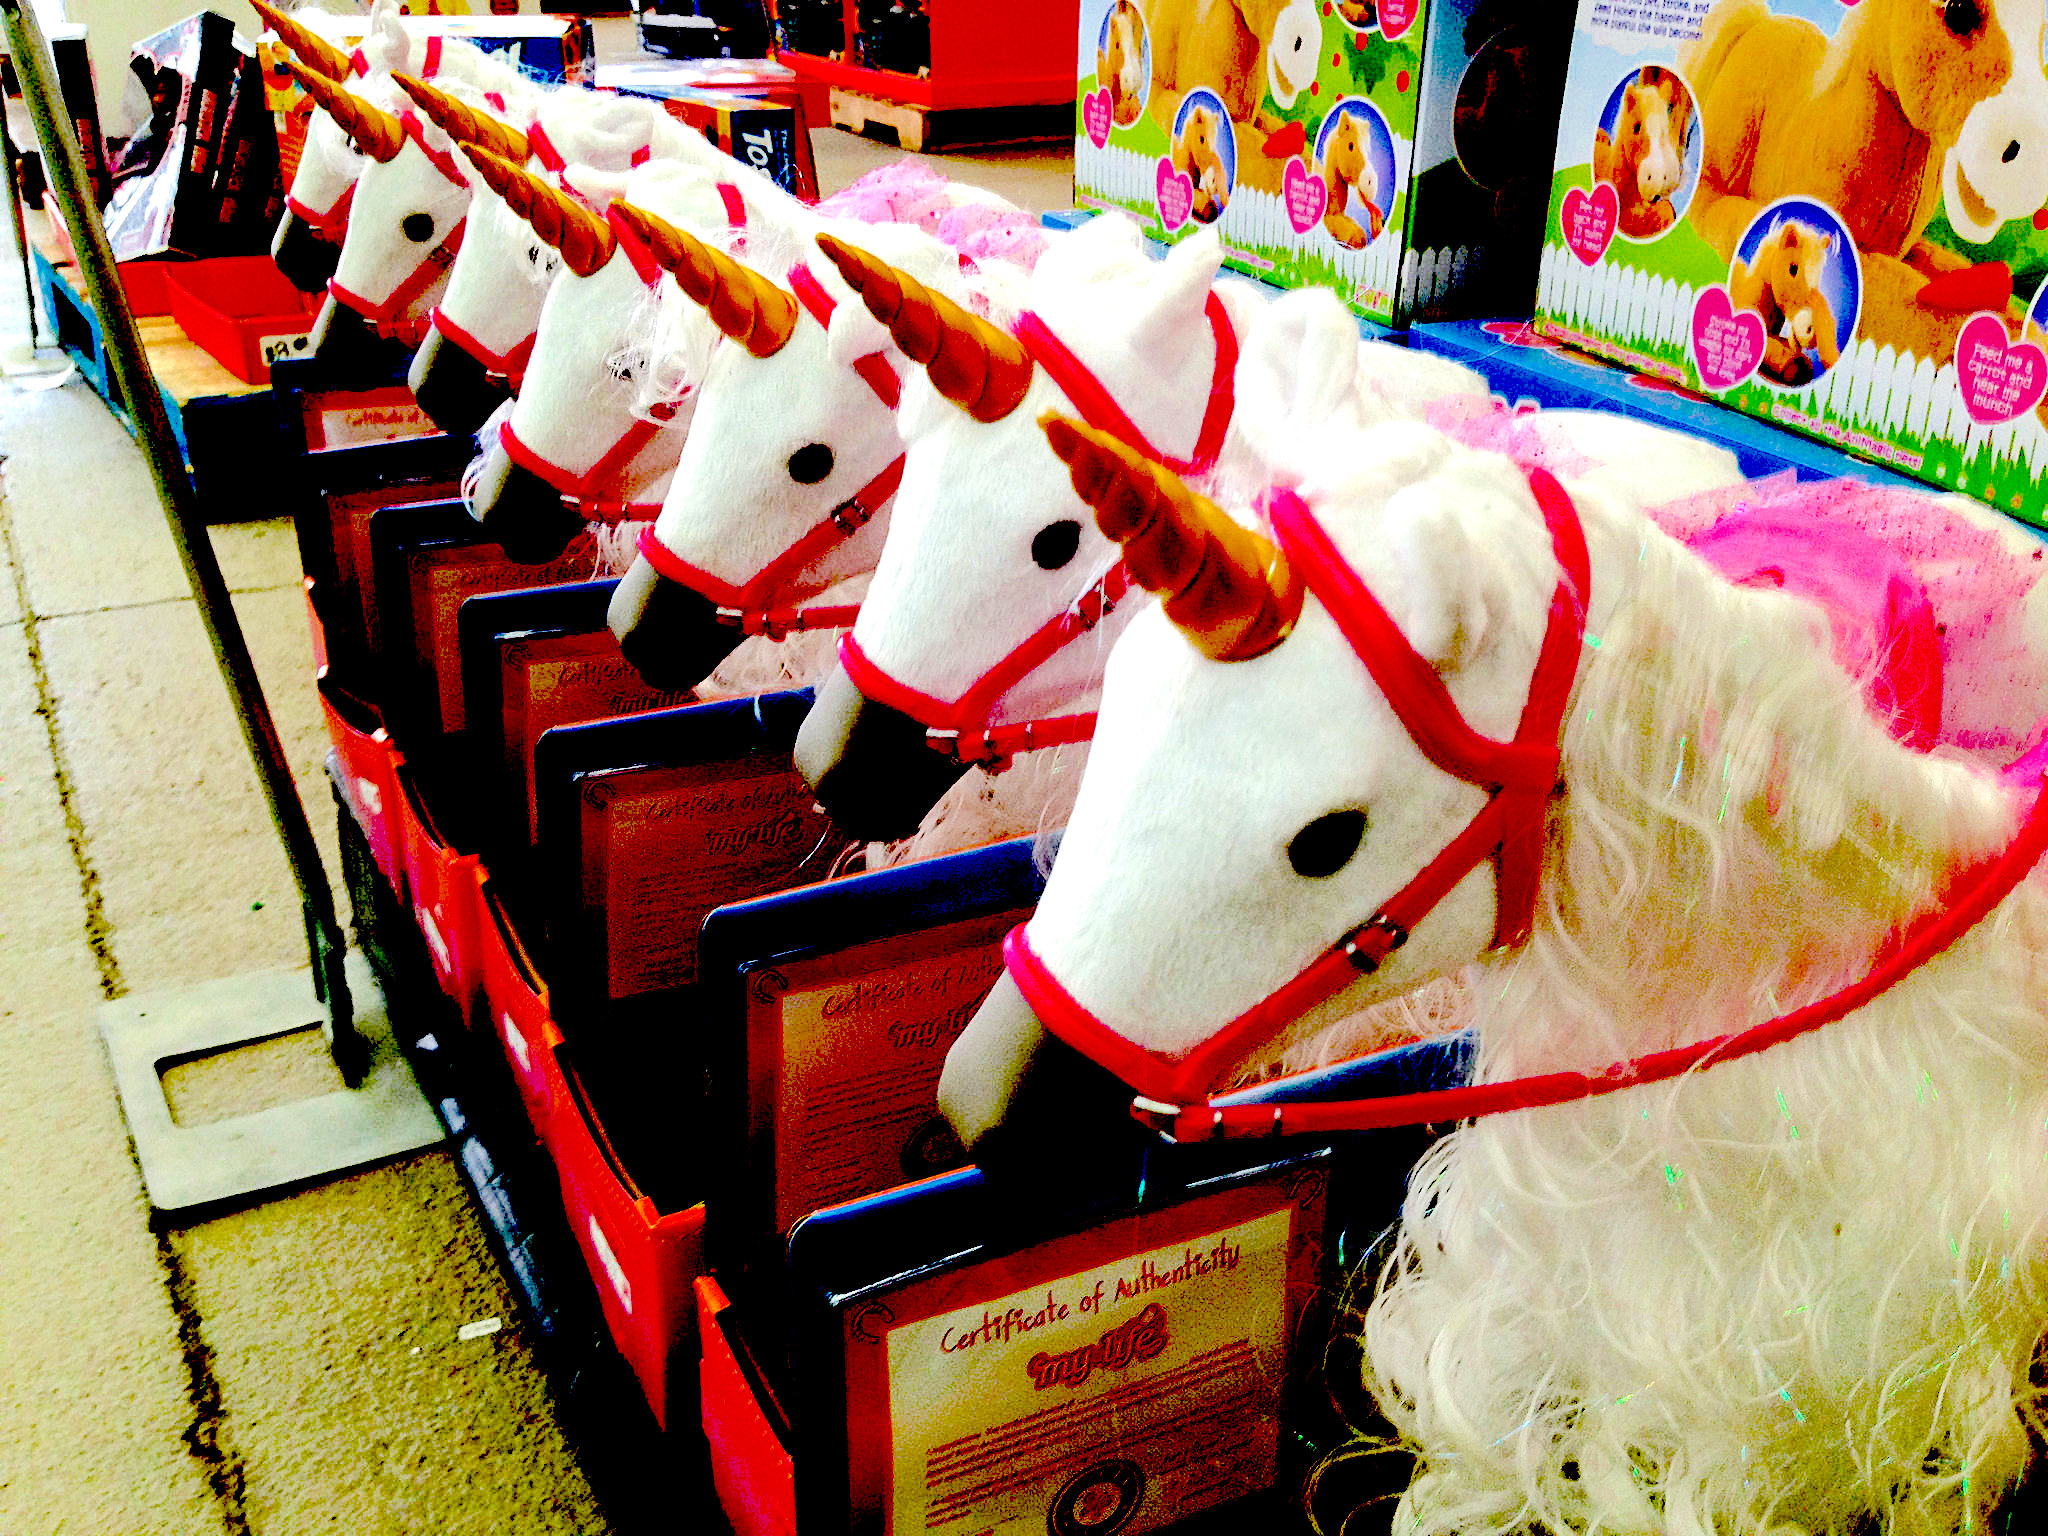 Unicorn stampede: All eyes on Lyft, Uber and Pinterest as they charge toward IPOs